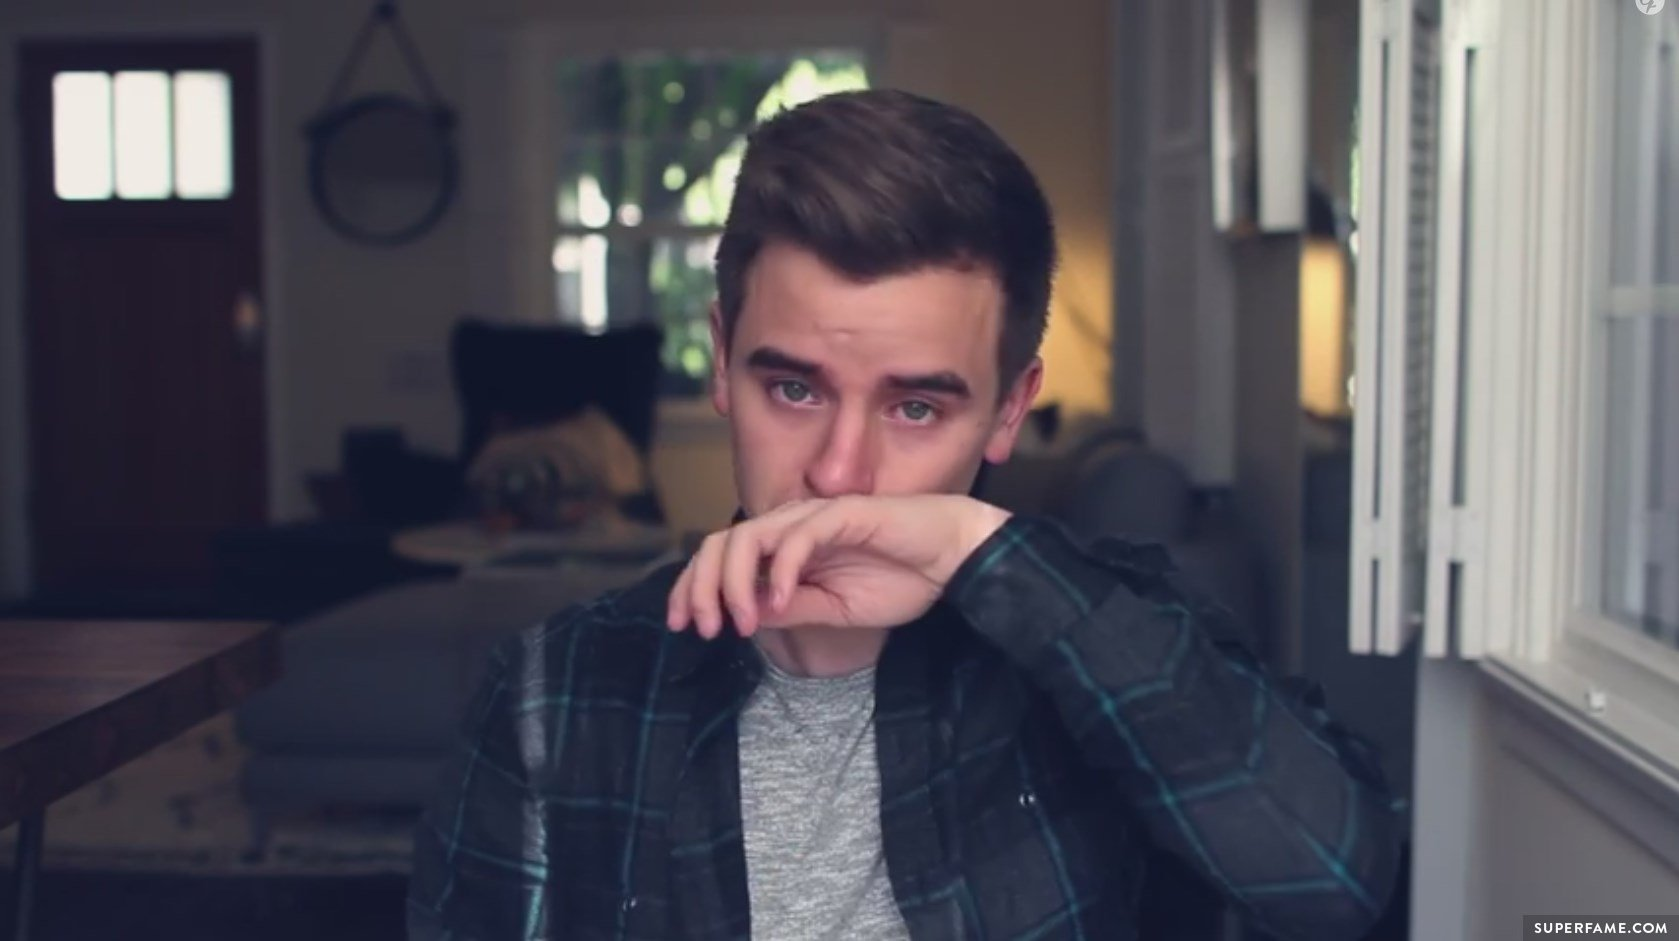 Connor Franta cries.